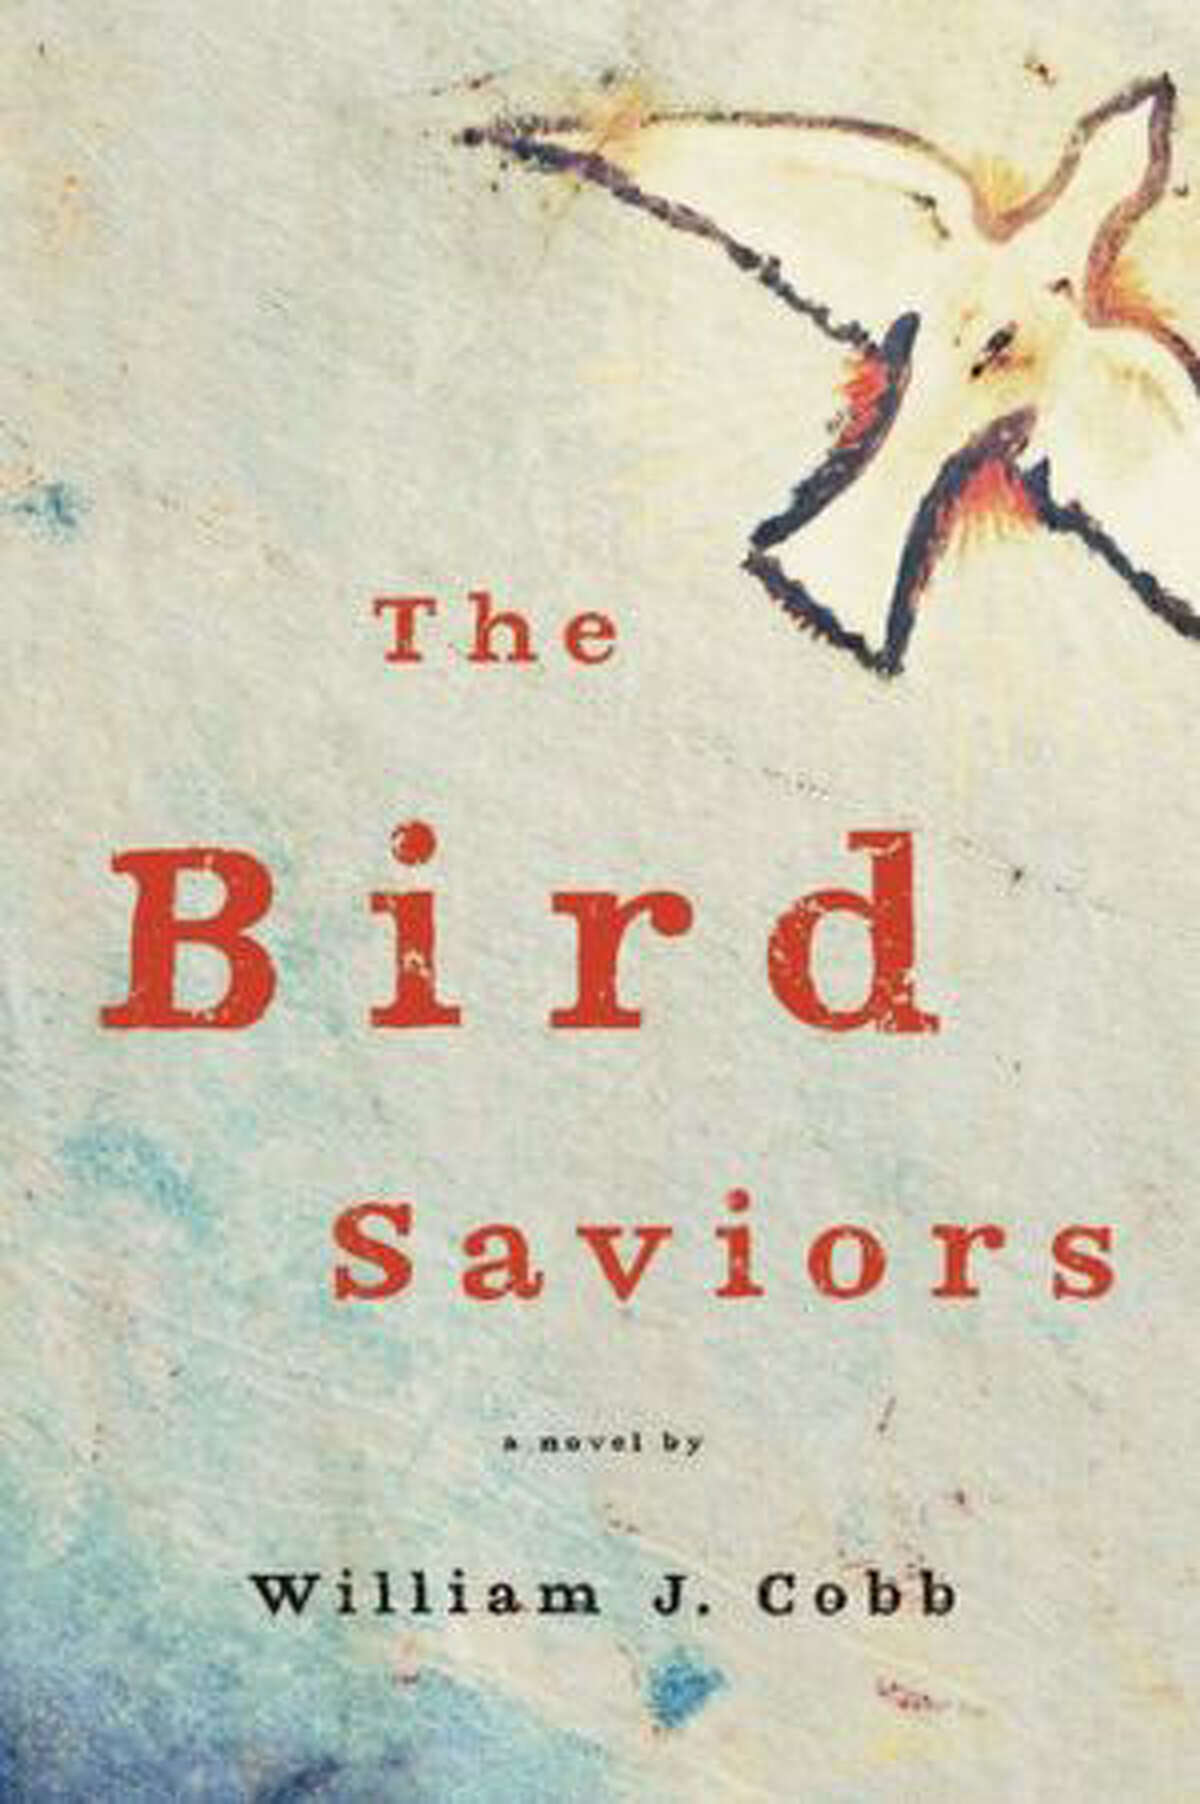 """Birds in many cultures are considered a link between heaven and earth. In William J. Cobb's fierce new novel """"The Bird Saviors,"""" our winged companions are harbingers of environmental disaster in a near-future time of economic turmoil, fundamentalist sects, weather change, severe drought, work shortages, immigration crisis and systemic corruption."""